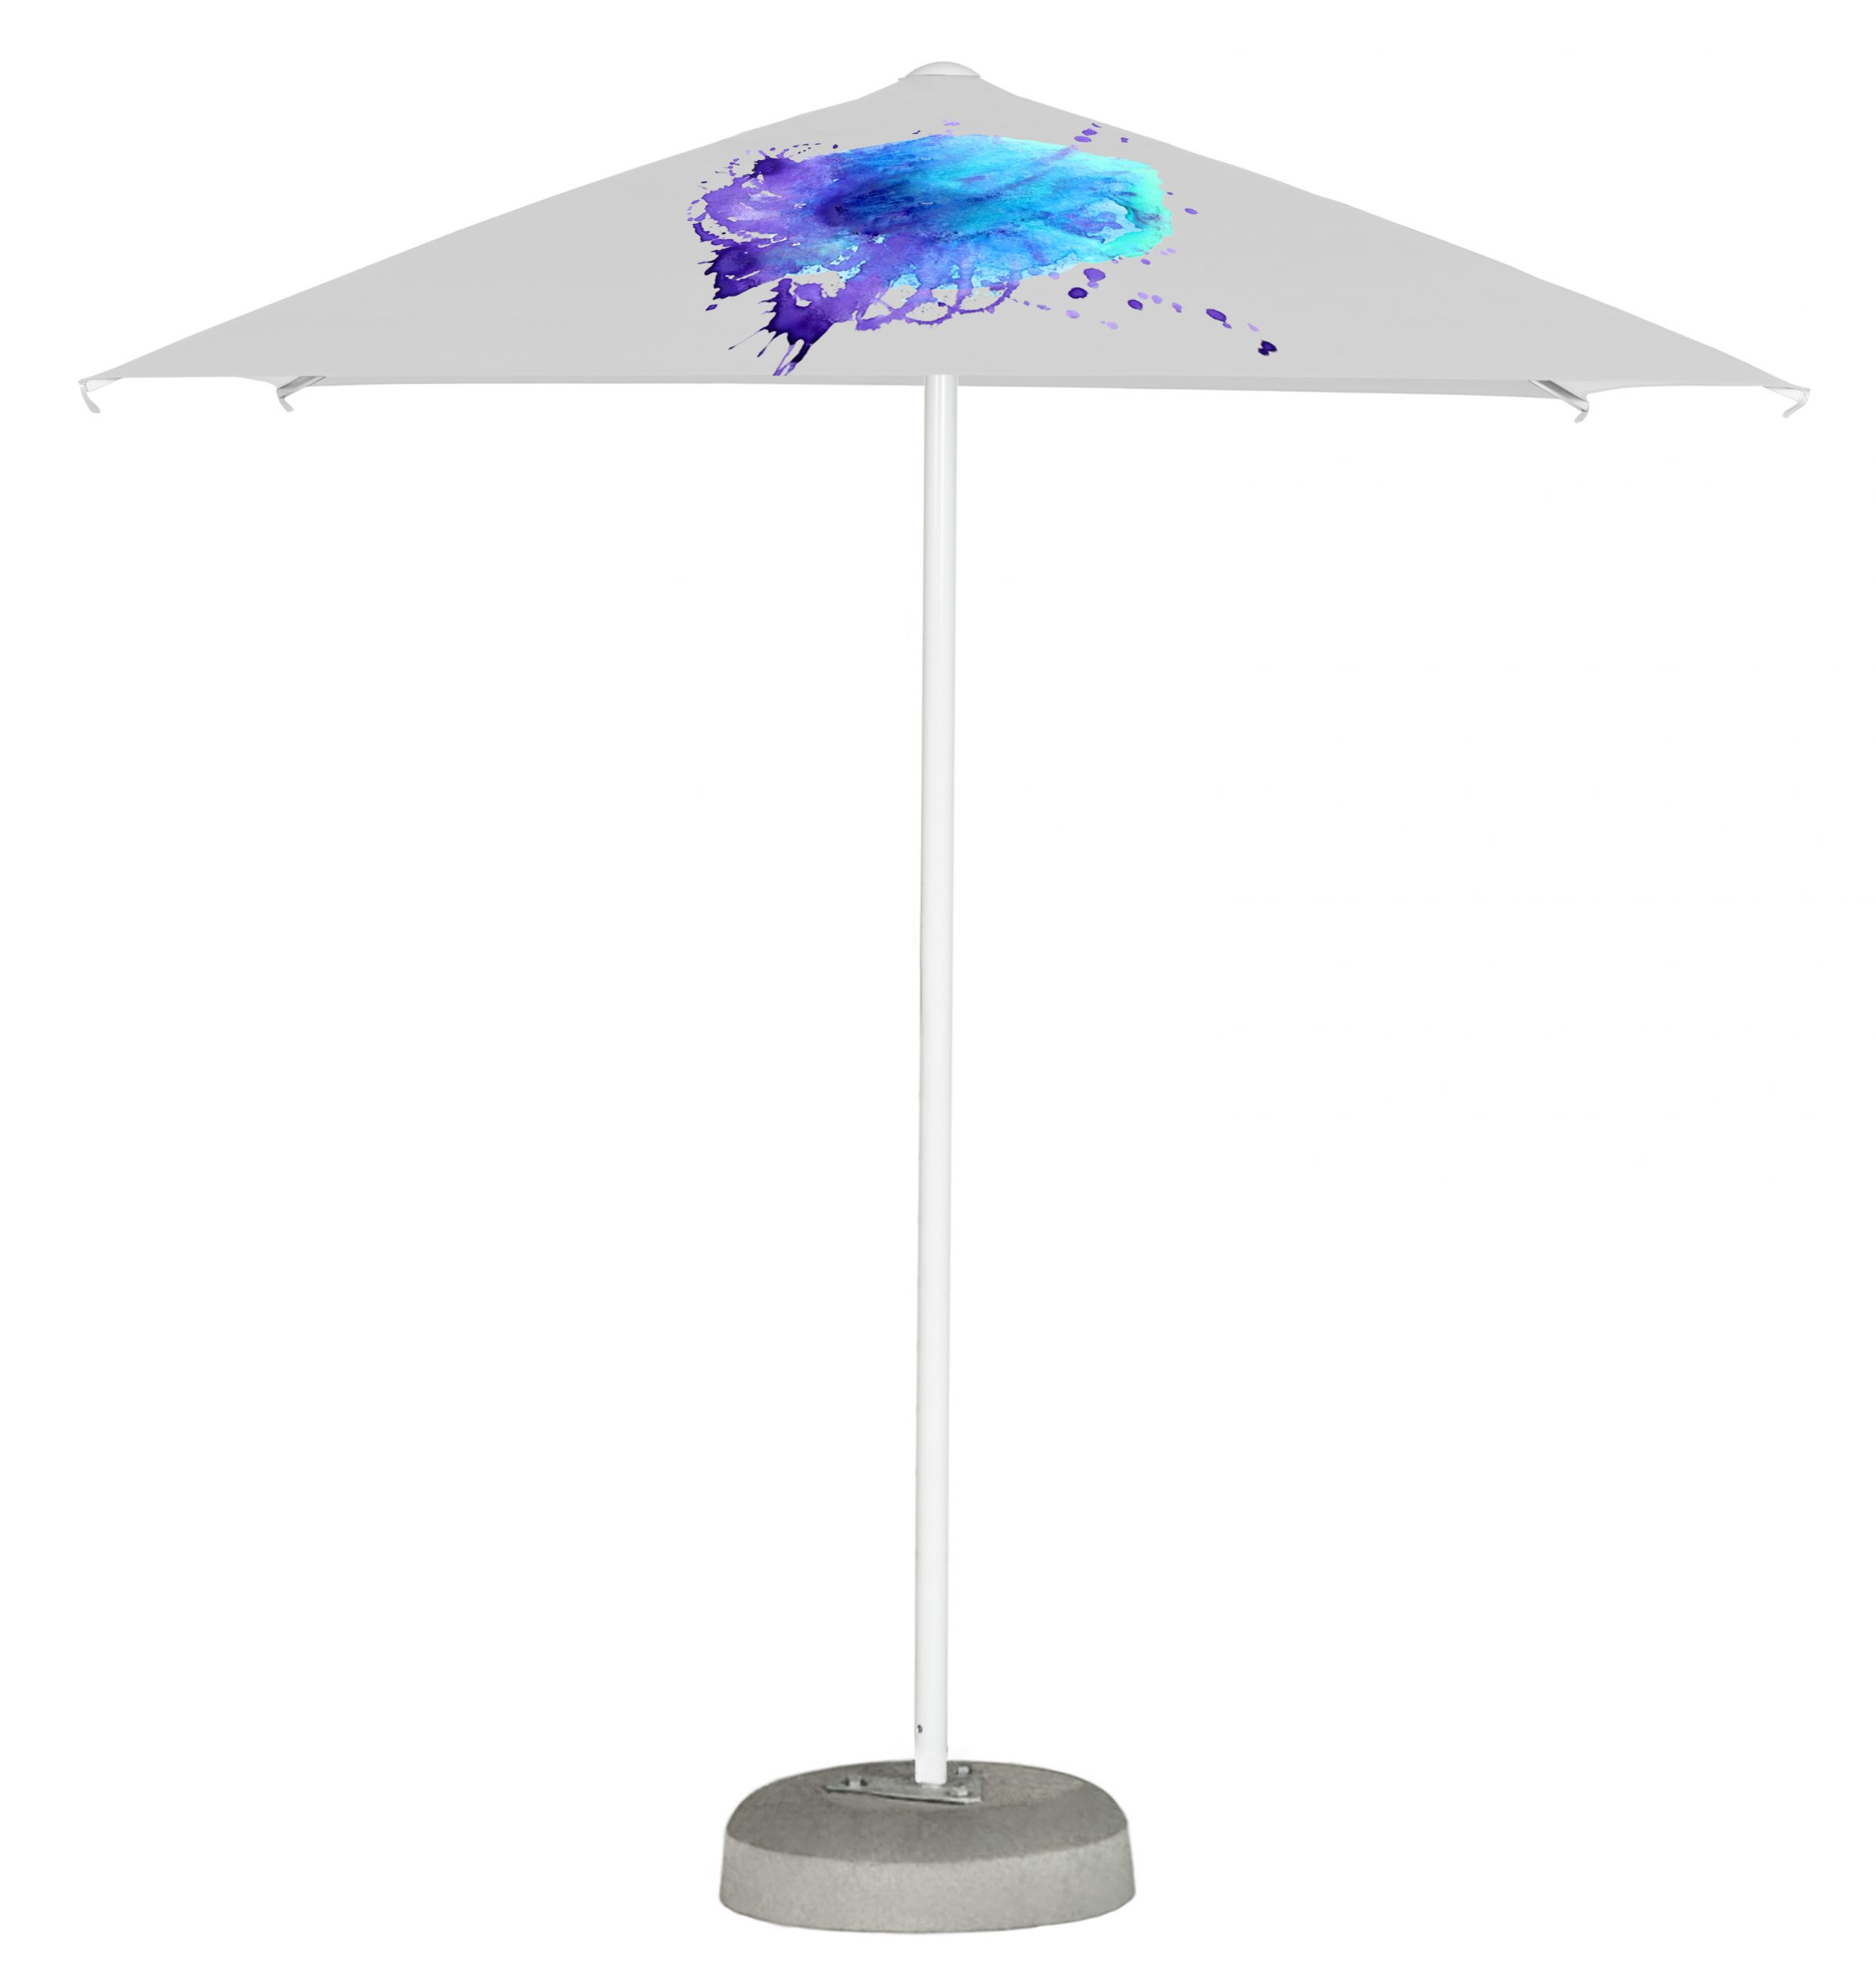 21. Easy Up Parasol Square 2 m